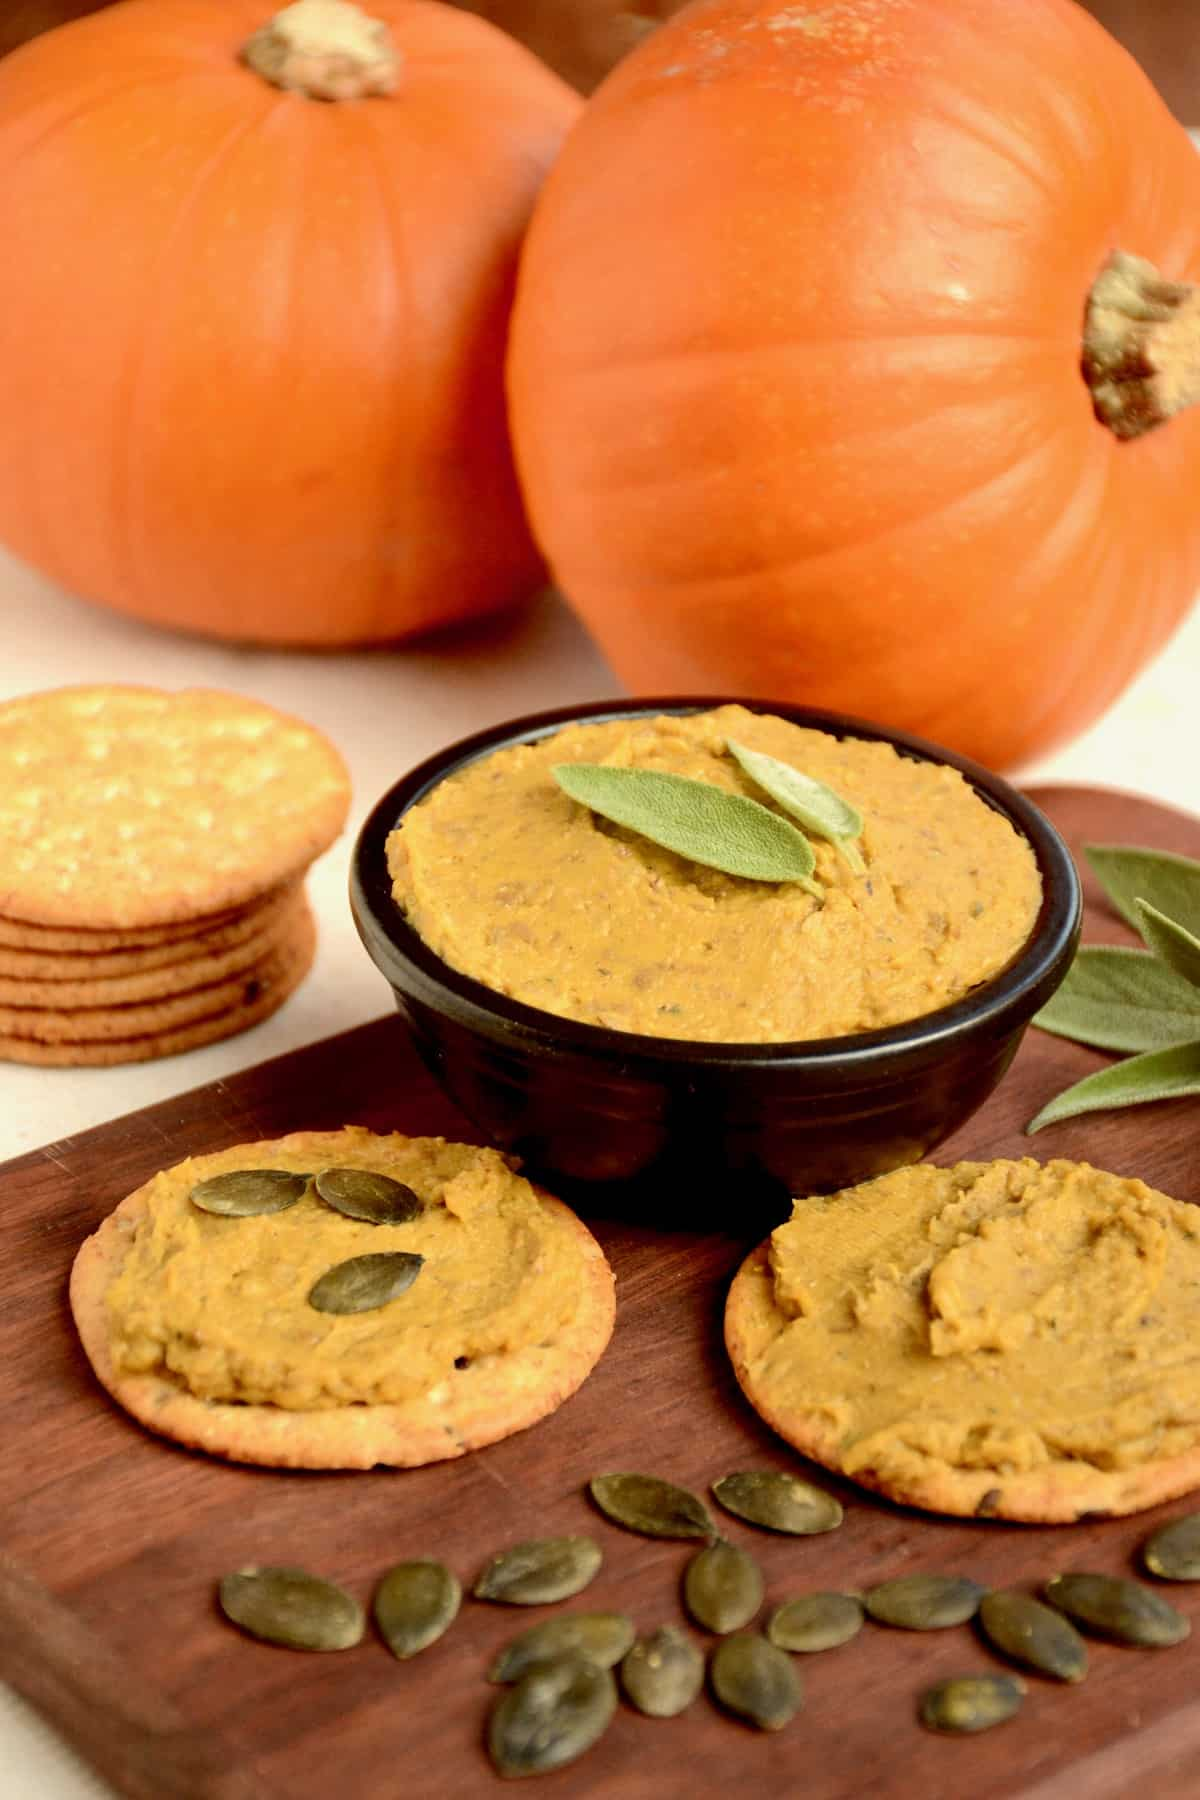 A wooden board with vegan pate and crackers and two small pumpkins in the background.